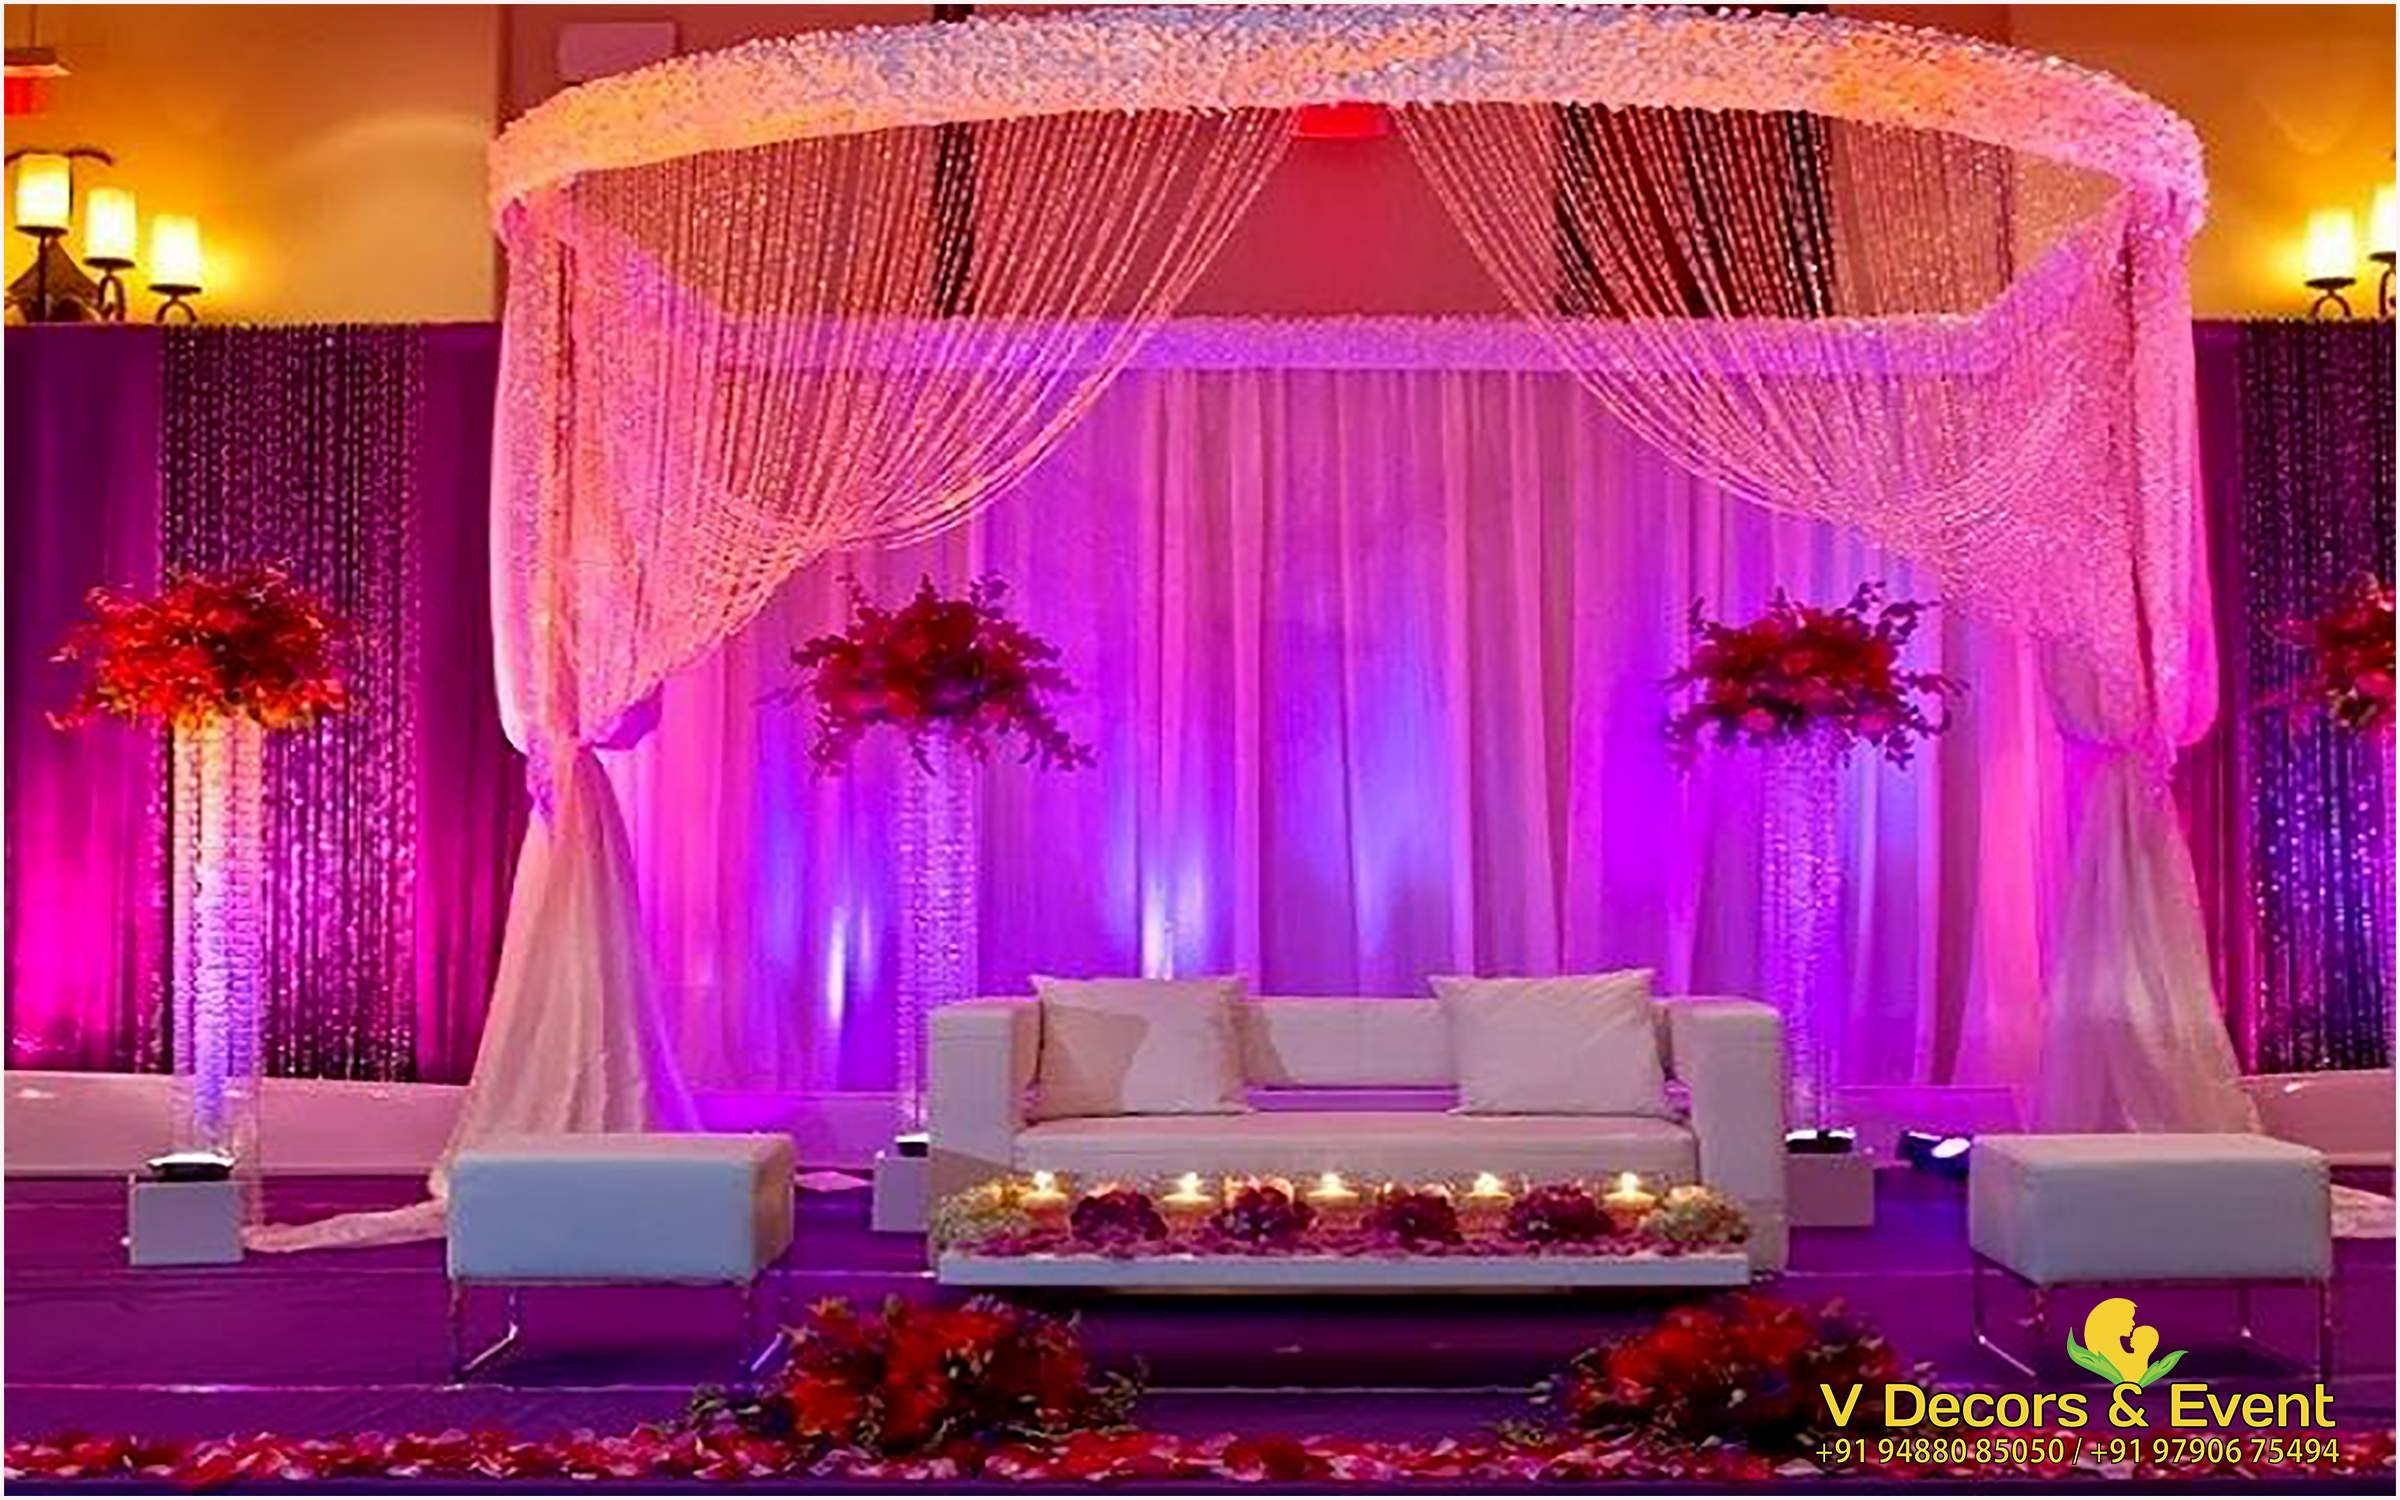 v decors and events wedding planners in pondicherry wedding decorations in pondicherry wedding. Black Bedroom Furniture Sets. Home Design Ideas